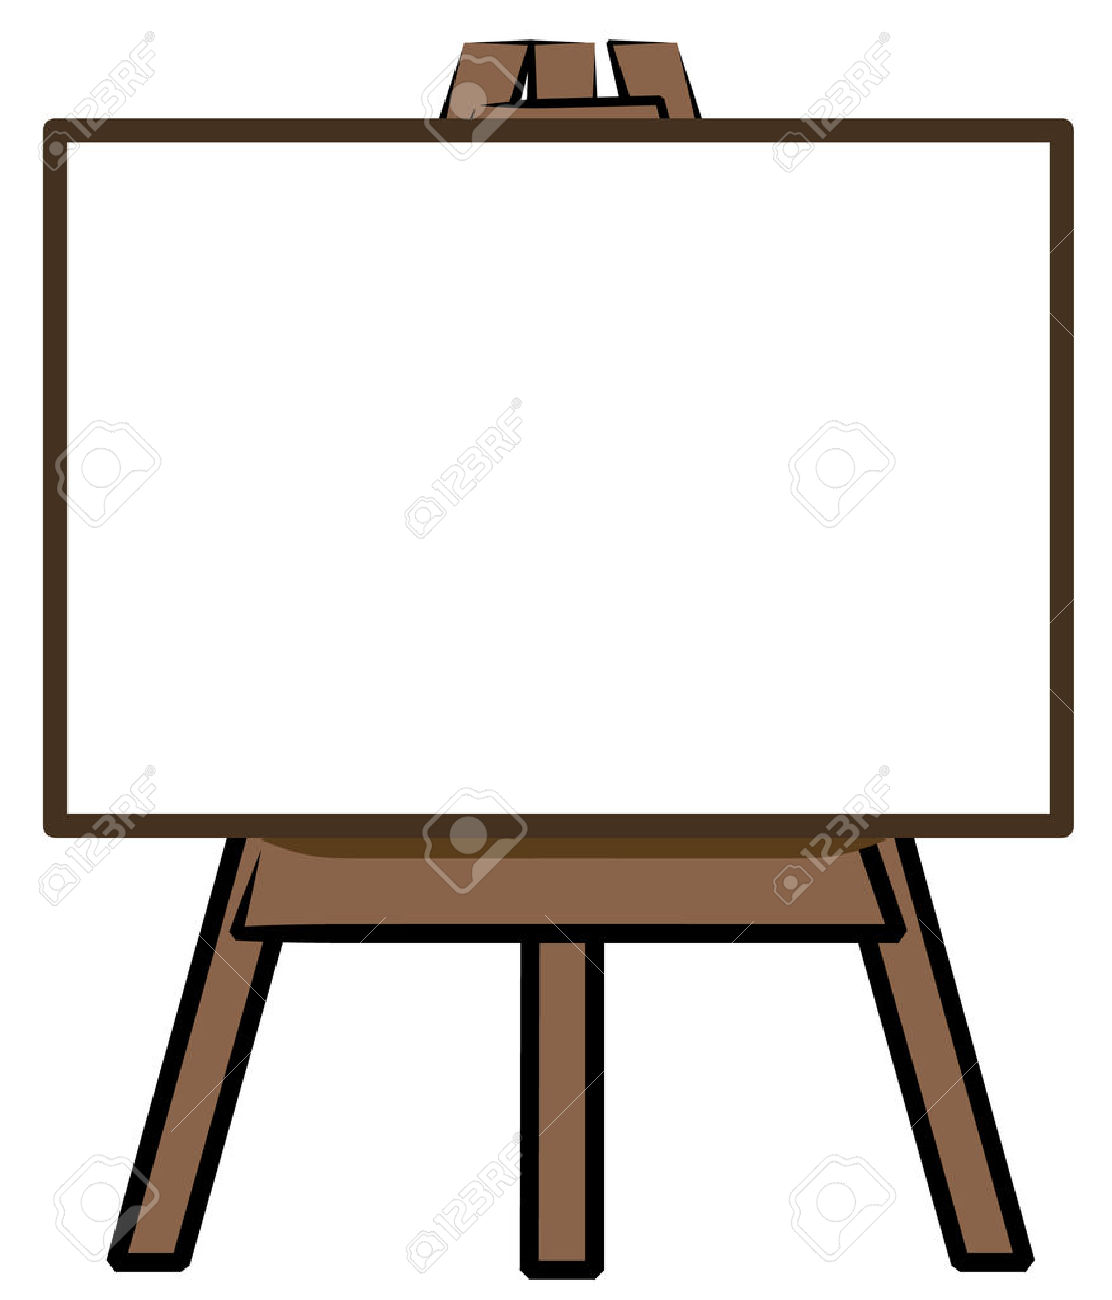 Painter clipart easel board. Black free download best